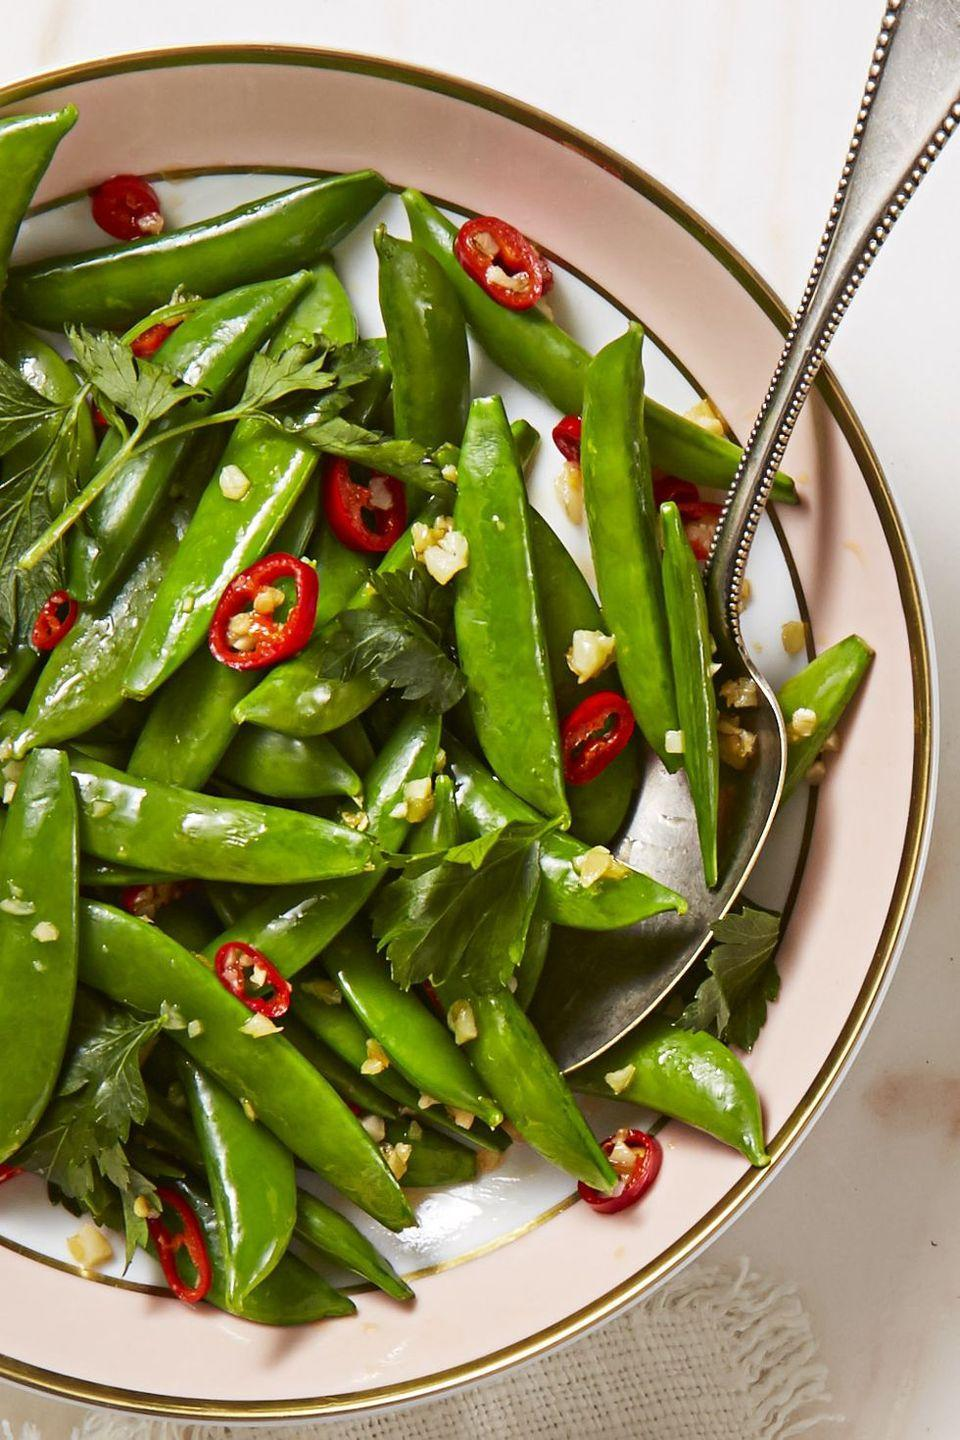 """<p>Sweet snap peas are loaded with garlic and chile for even more flavor.</p><p><em><a href=""""https://www.goodhousekeeping.com/food-recipes/a43686/spicy-sesame-sugar-snaps-recipe/"""" rel=""""nofollow noopener"""" target=""""_blank"""" data-ylk=""""slk:Get the recipe for Spicy Sesame Sugar Snaps »"""" class=""""link rapid-noclick-resp"""">Get the recipe for Spicy Sesame Sugar Snaps »</a></em></p>"""